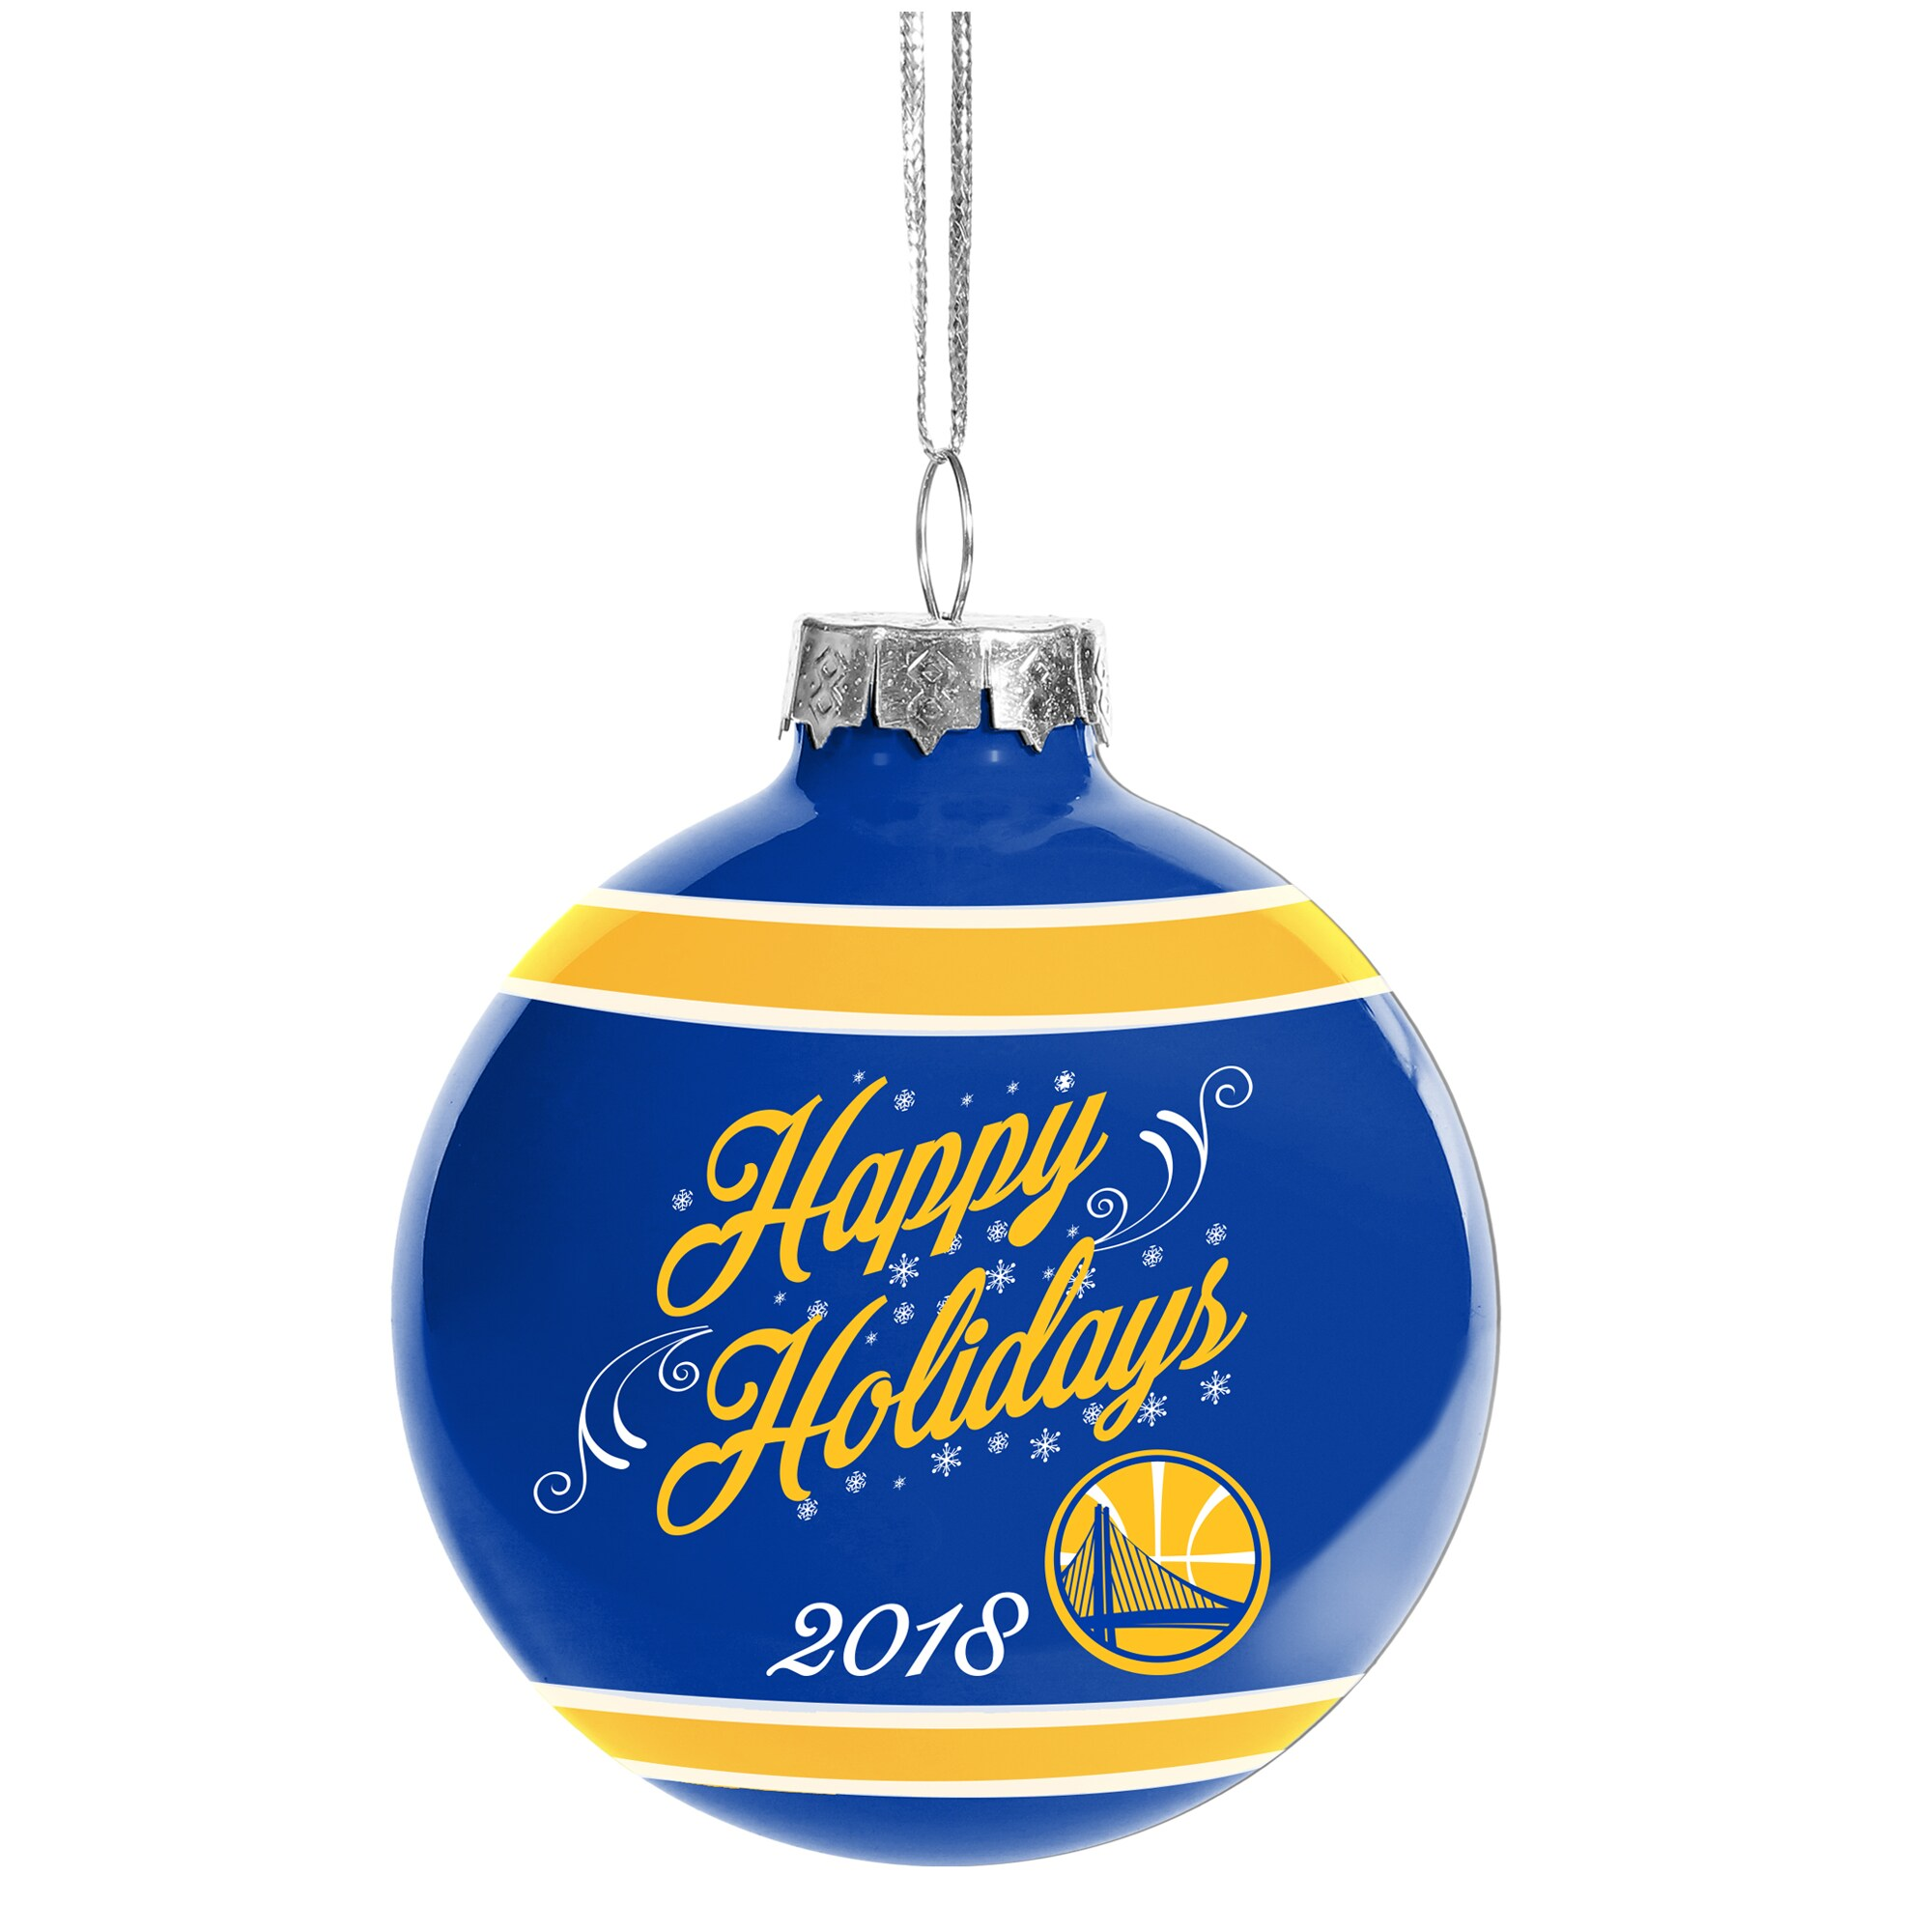 Golden State Warriors 2018 Happy Holidays Glass Ball Ornament